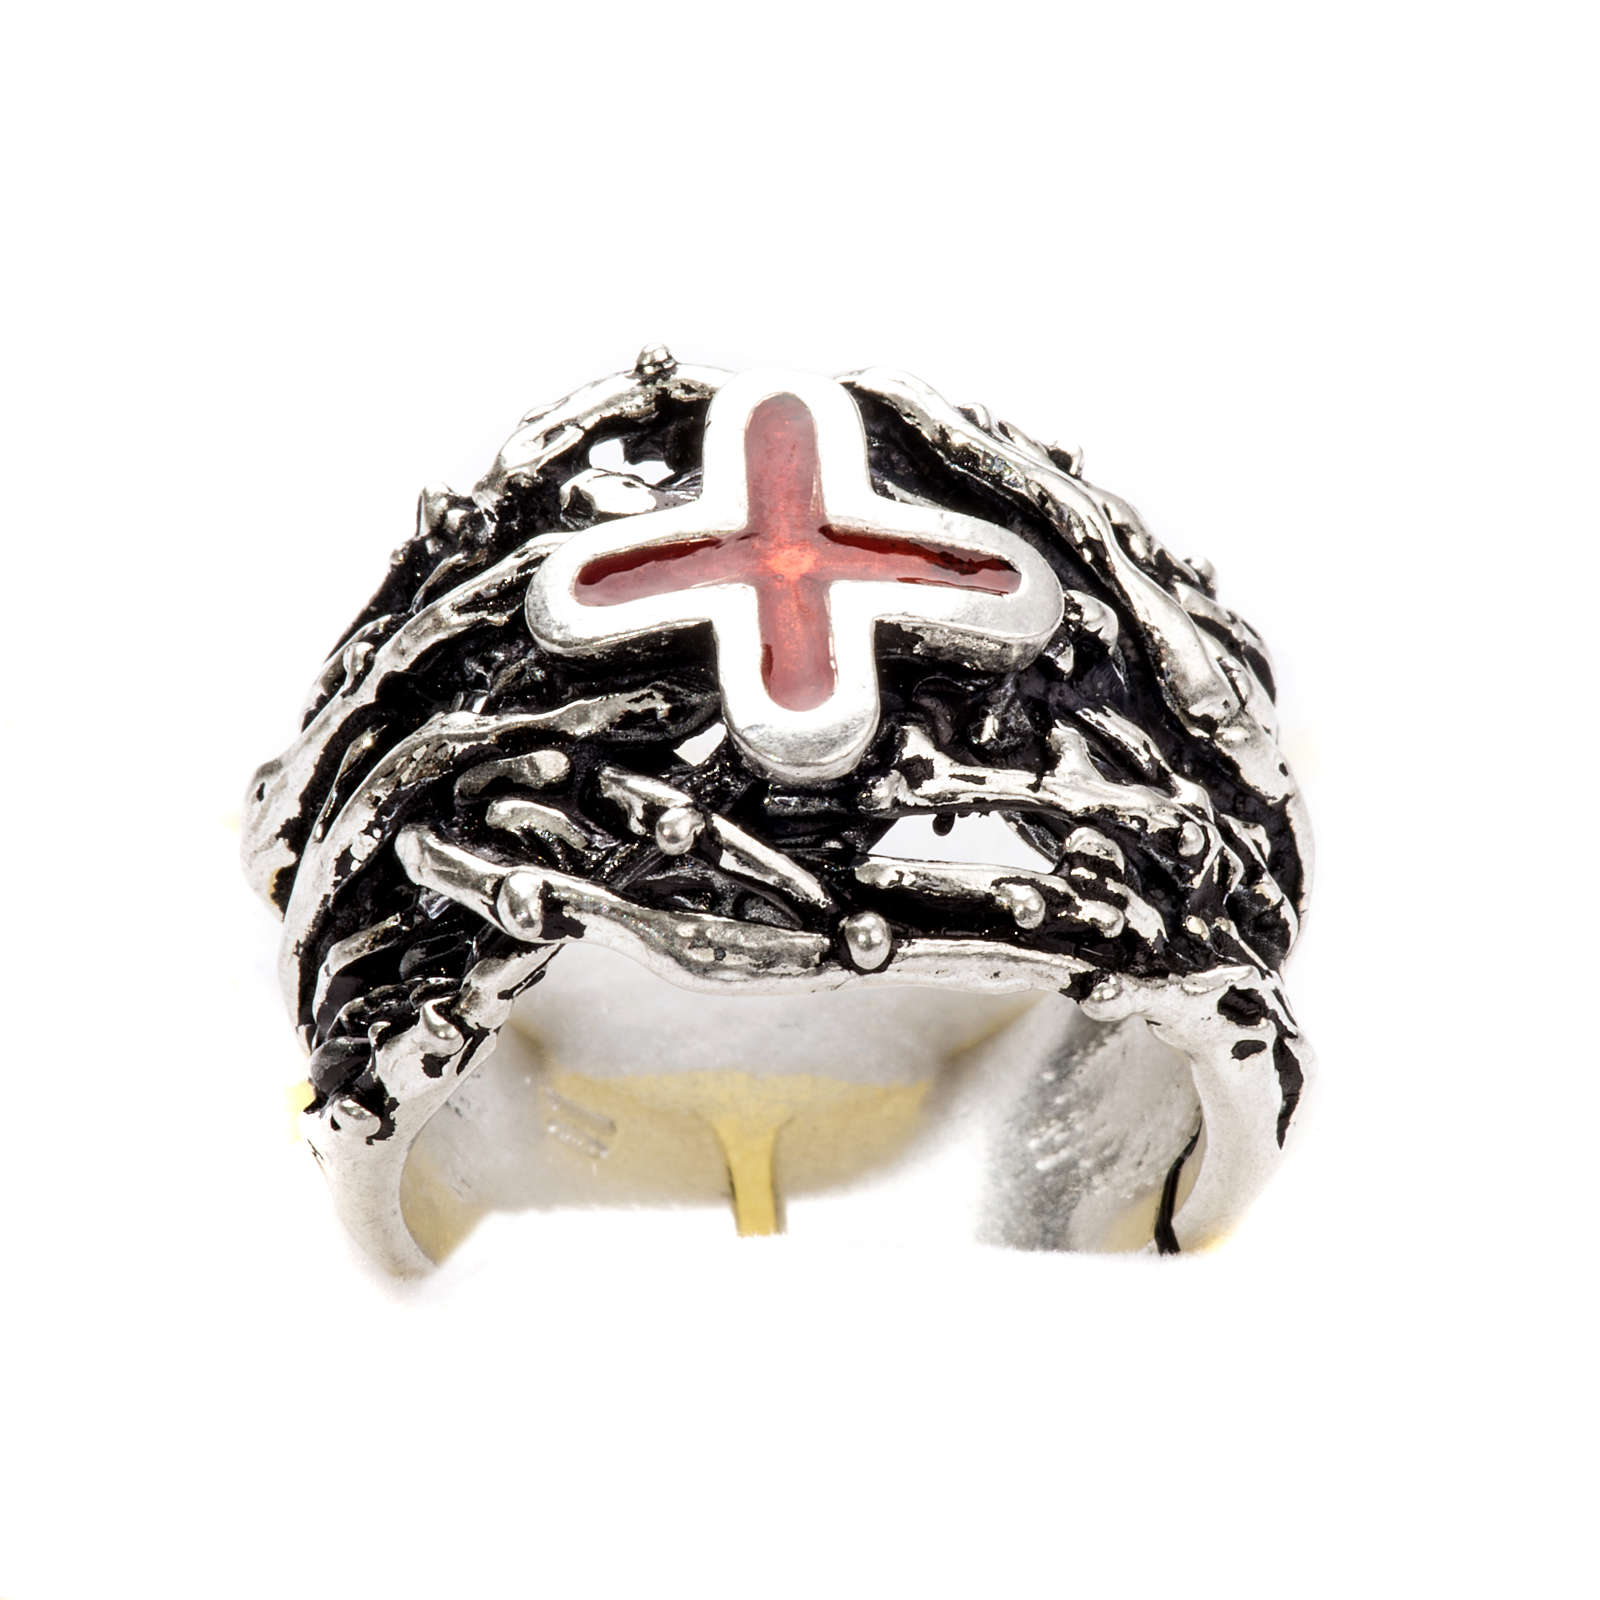 Ecclesiastical Ring made of silver 800 with enamel cross 3